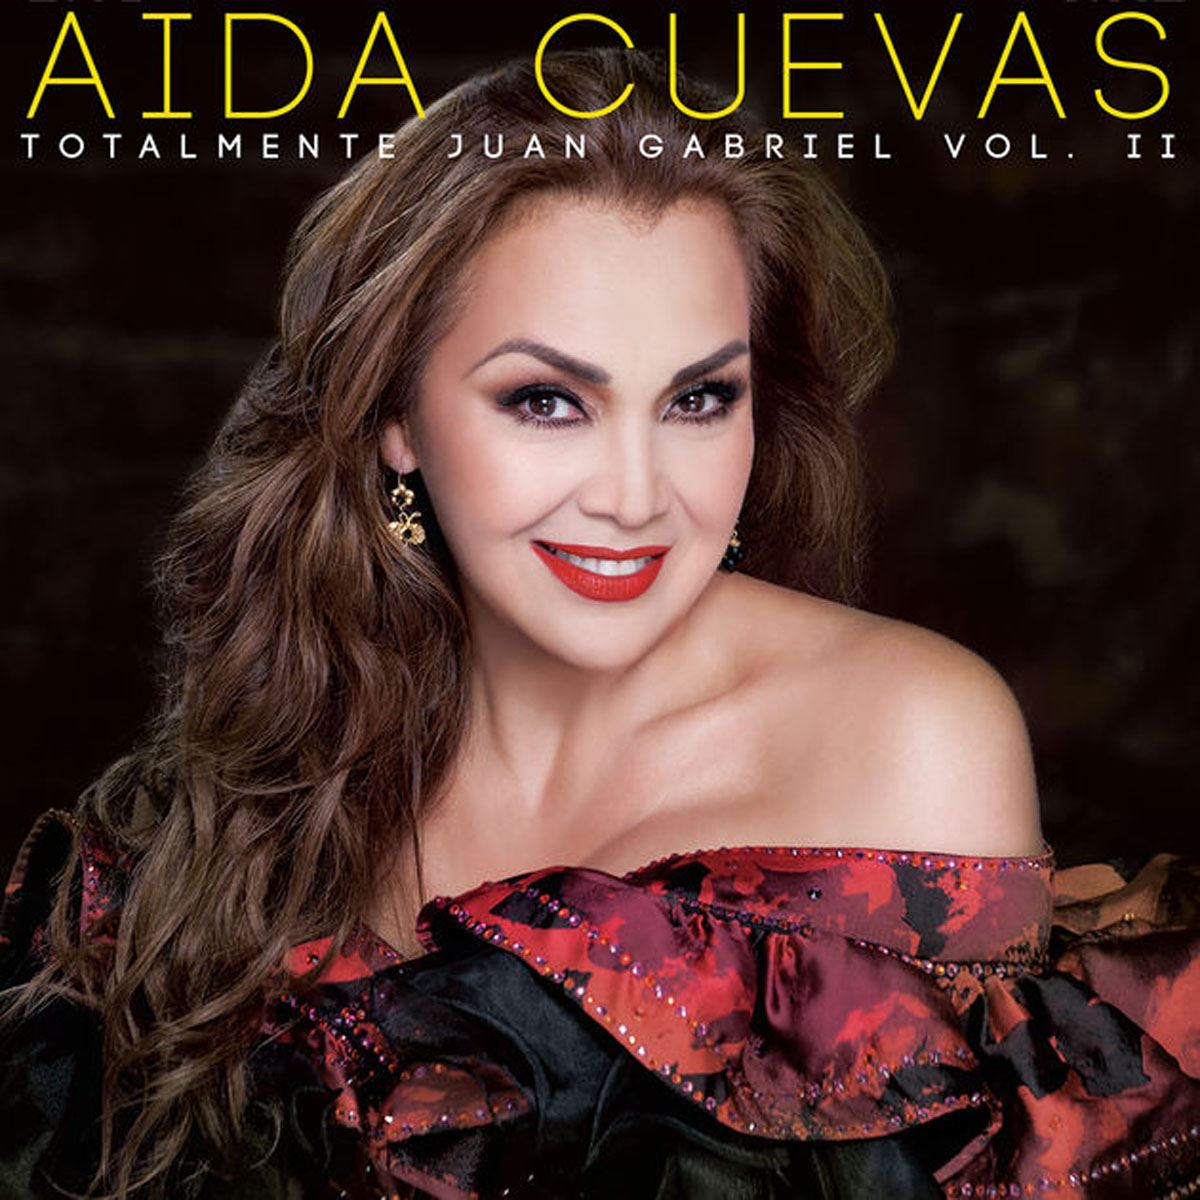 Cd aida cuevas-totalmente juan gabriel vol. 2  - Sanborns